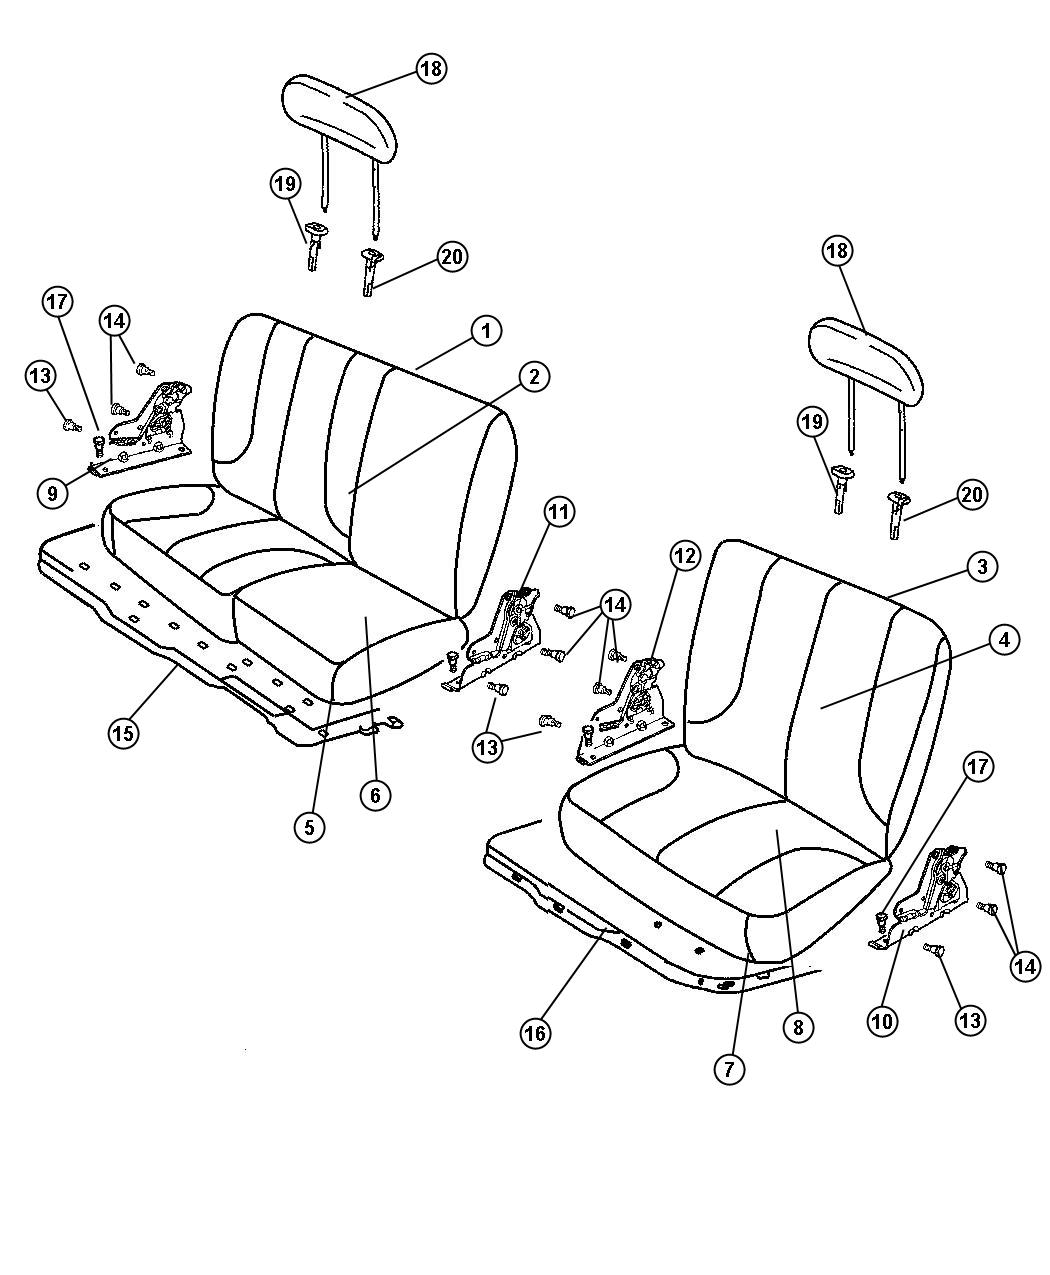 Diagram Rear Seat - Split Seat - Trim Code [VL]. for your Dodge